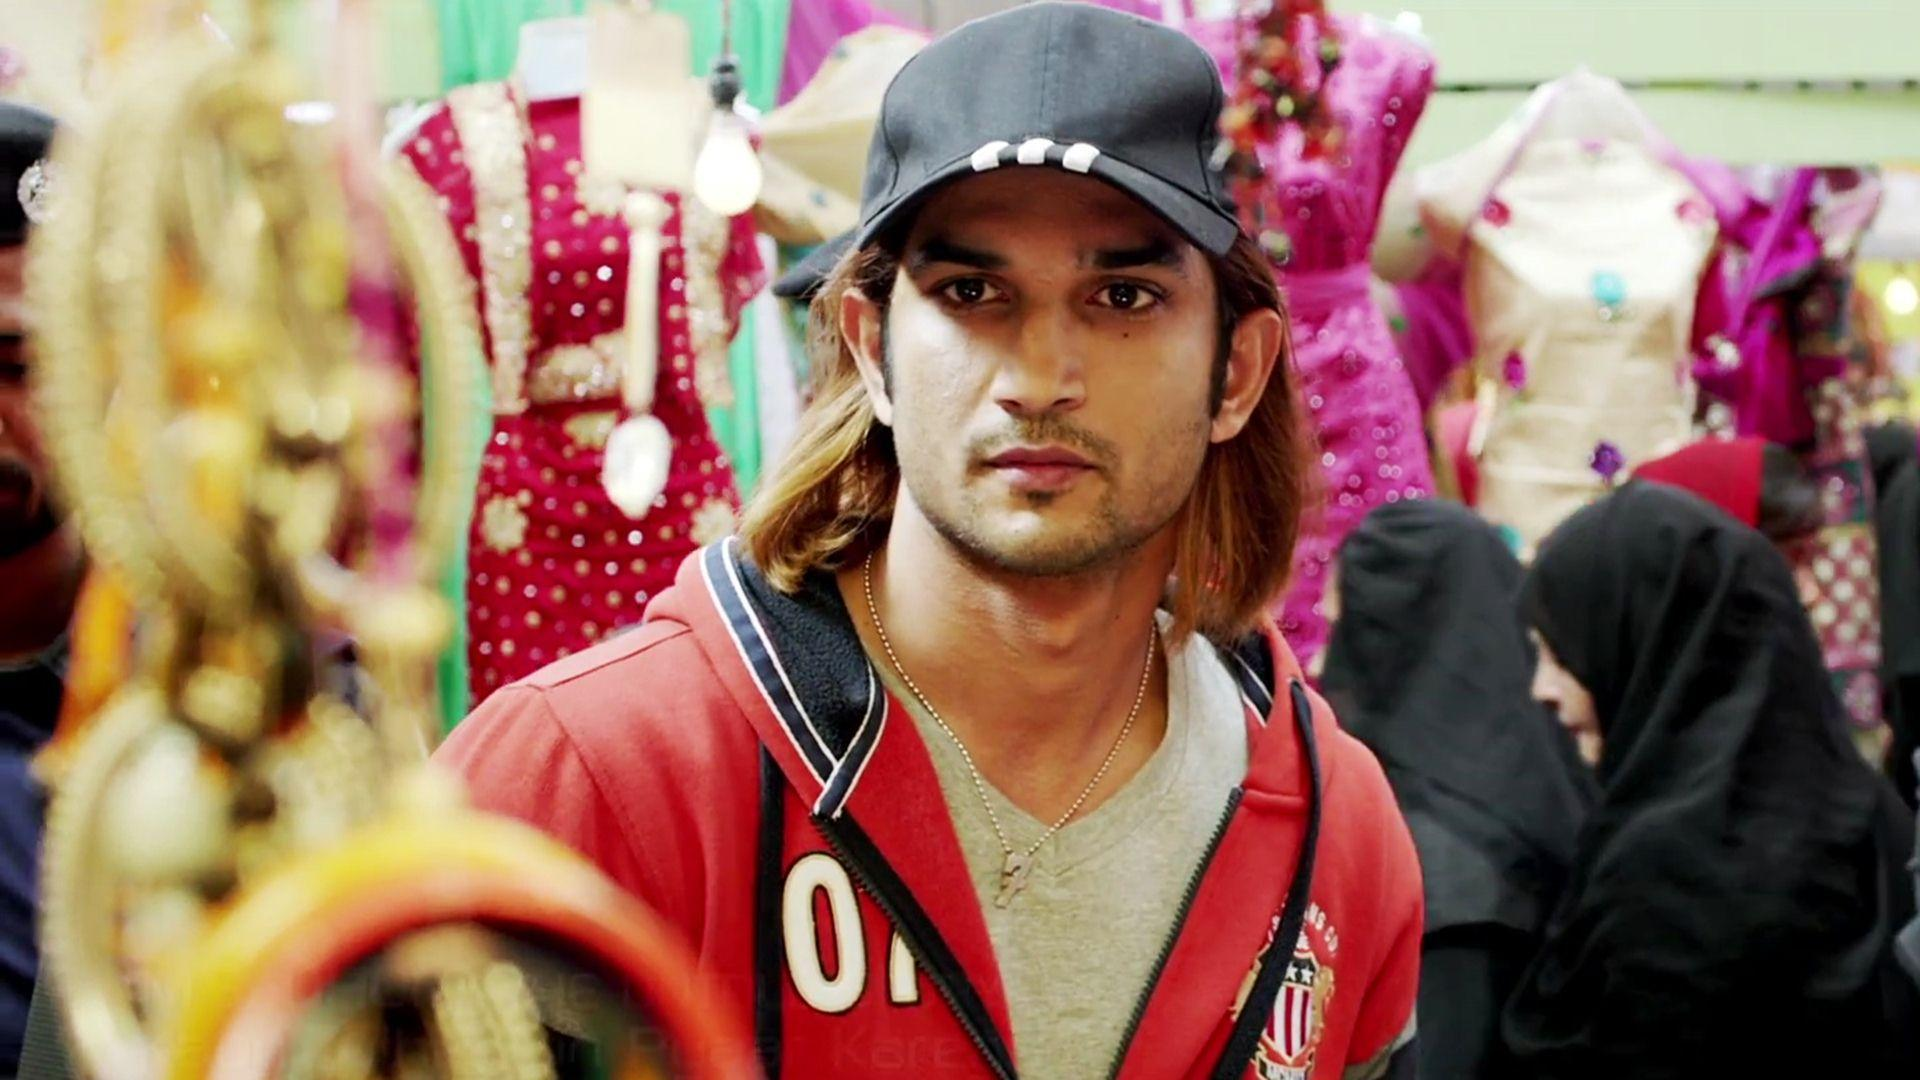 Sushant Singh Rajput In MS Dhoni The Untold Story Wallpapers